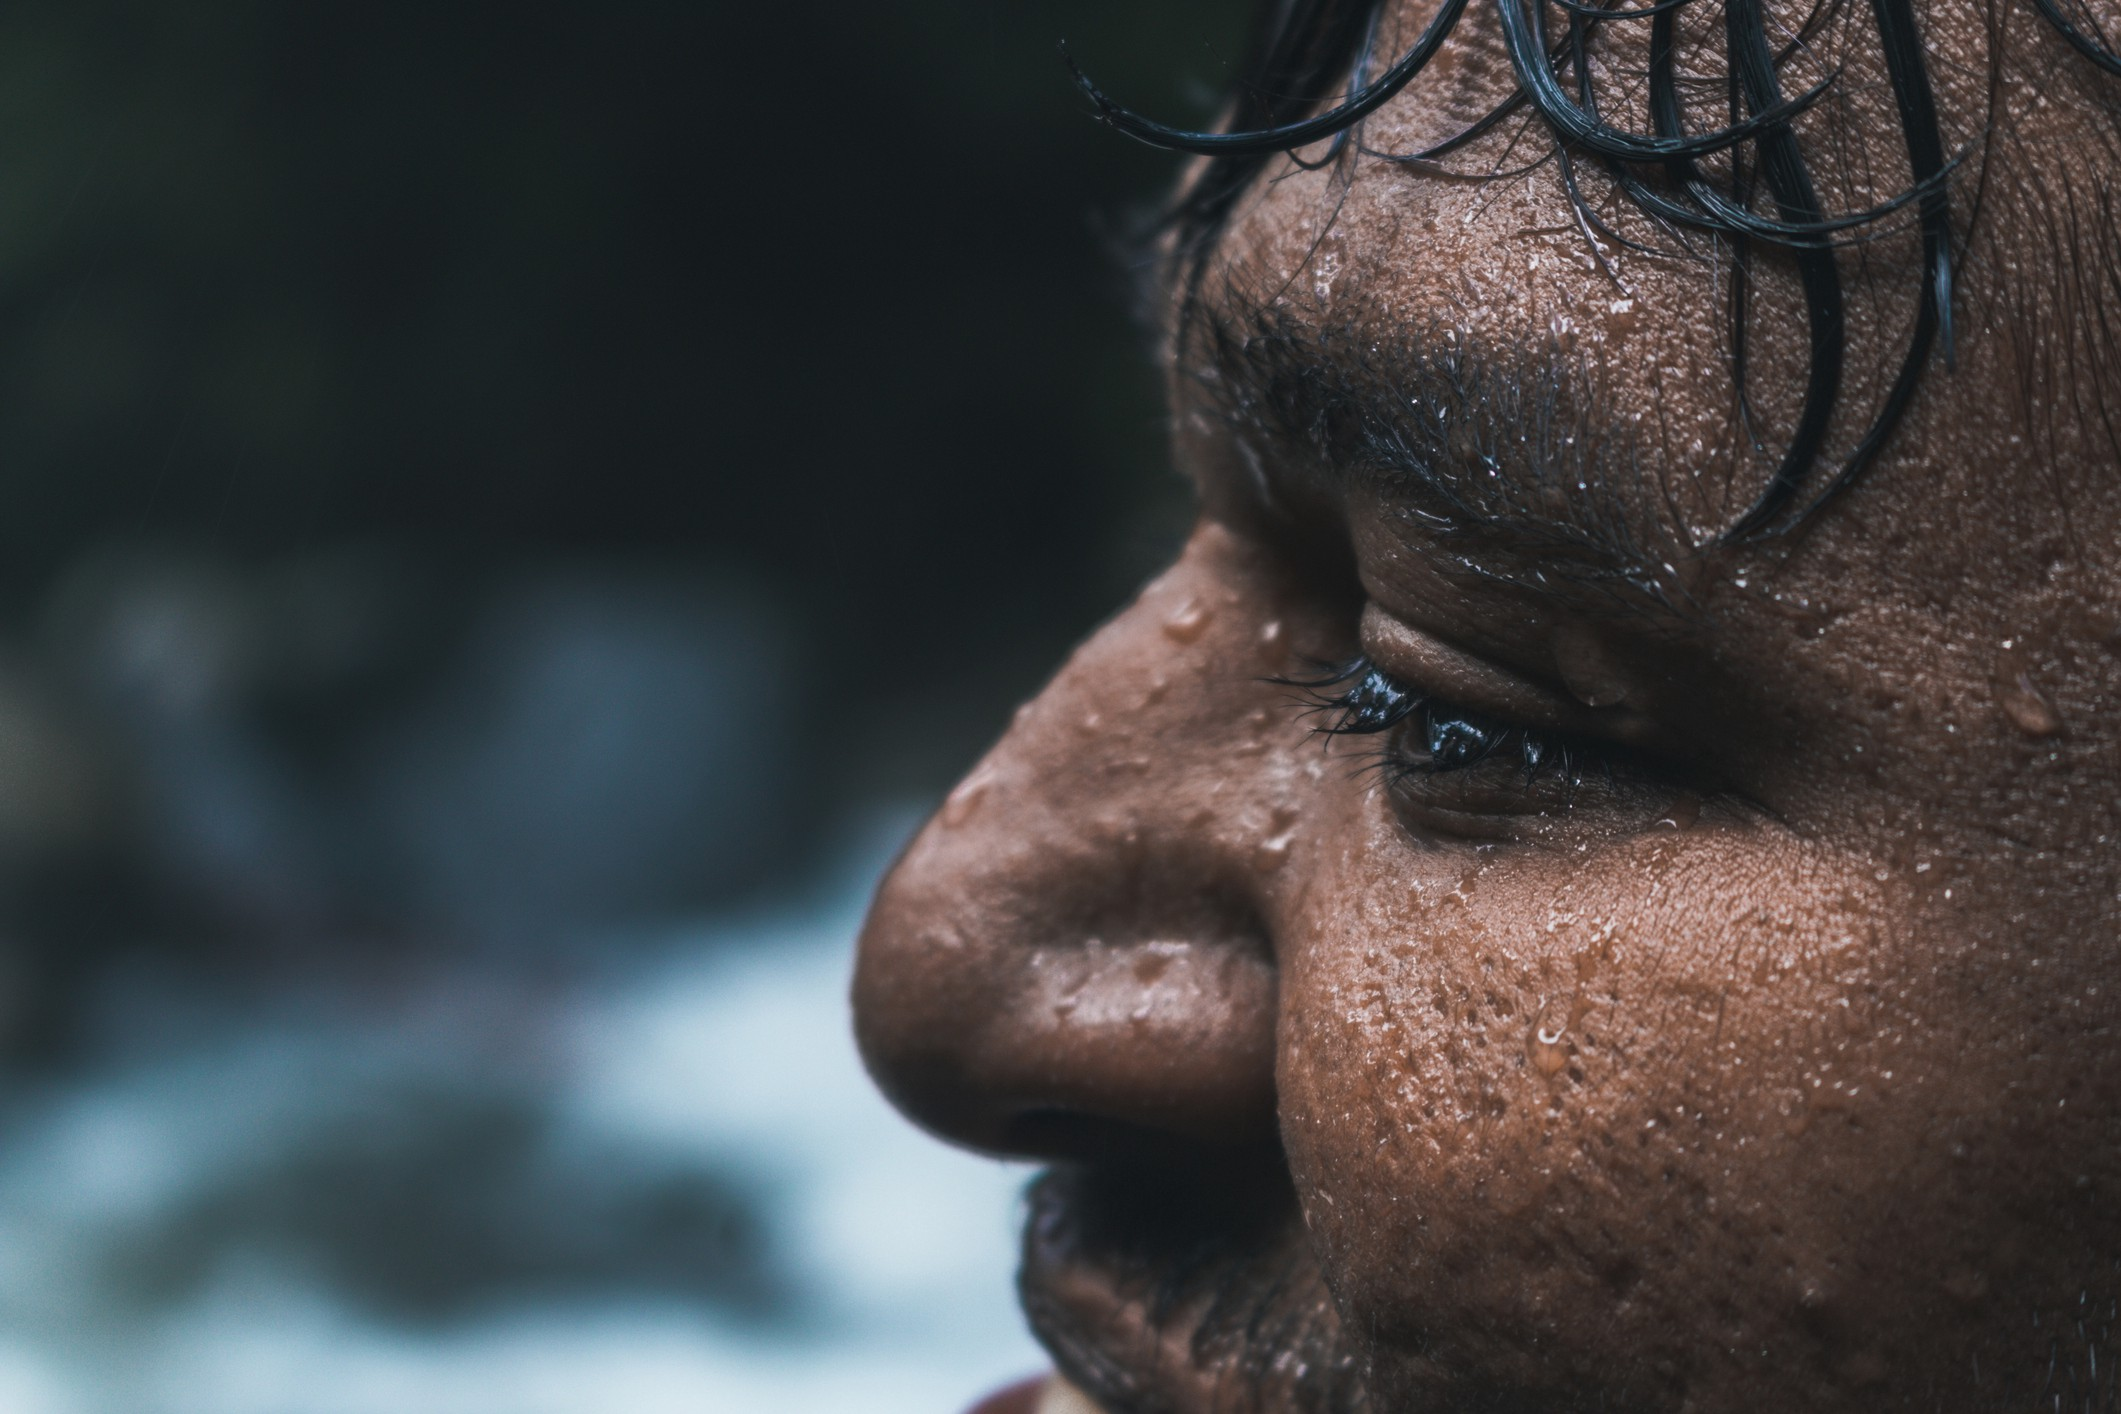 A closeup of a man's face that is wet with rain.